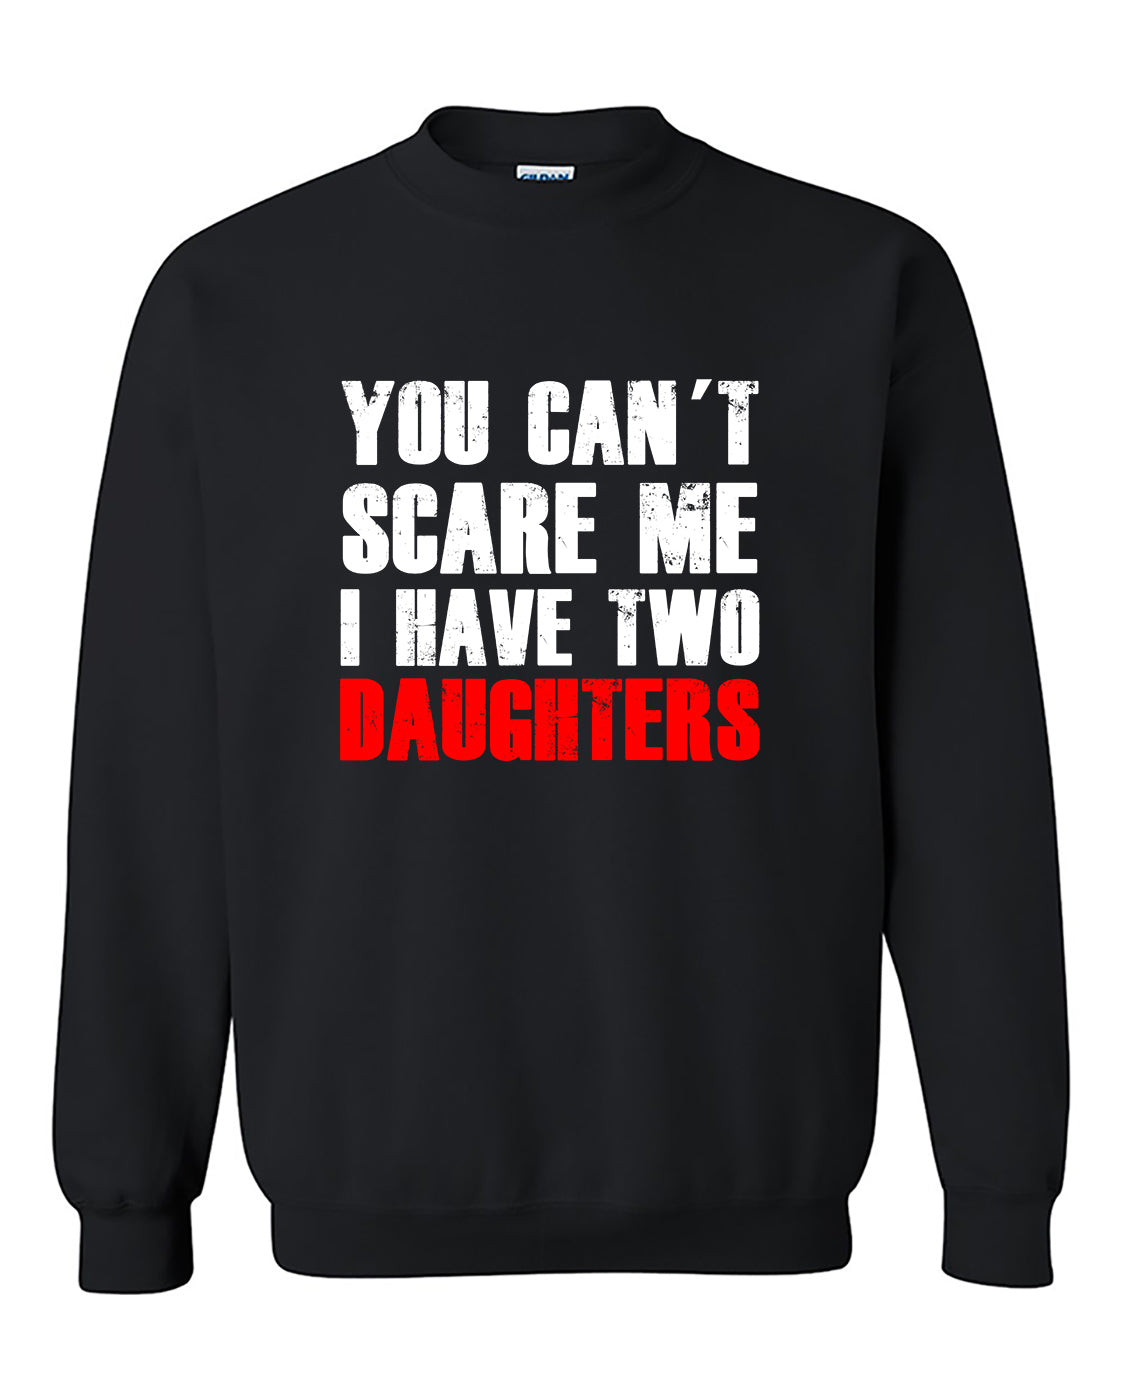 You Can't Scare Me, I Have Two Daughters Fathers Day Gift Crewneck Sweater